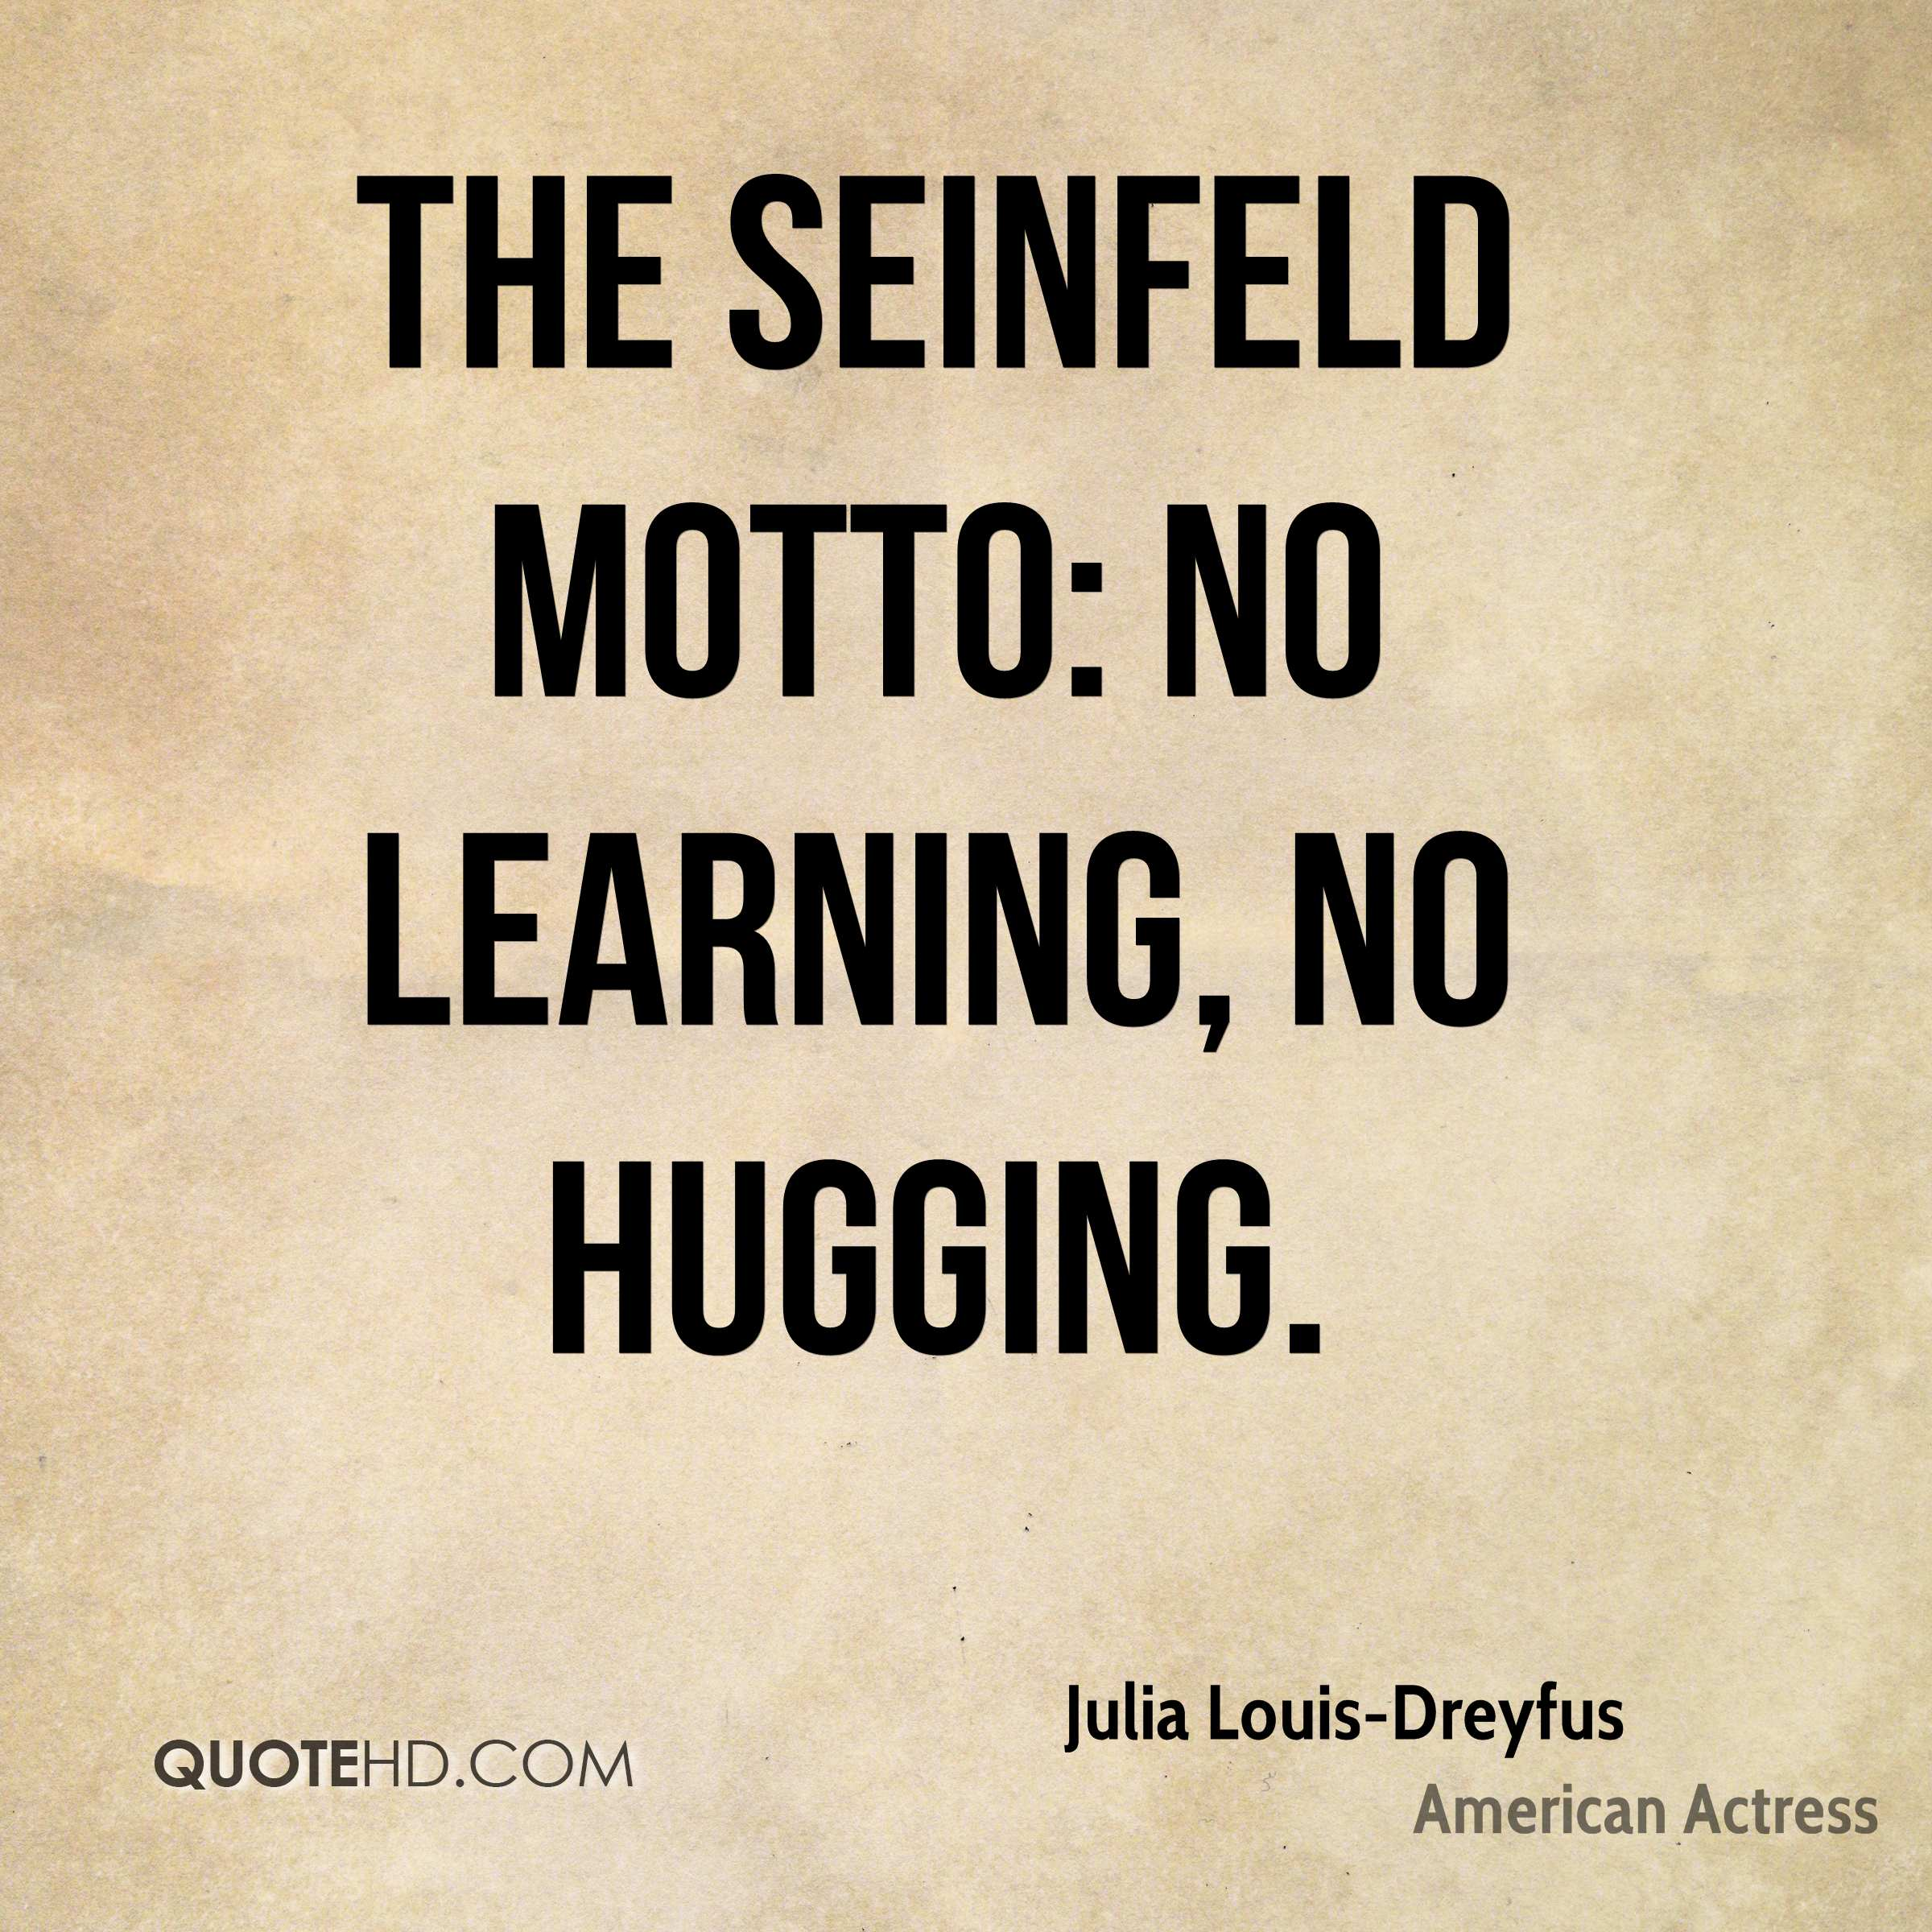 The Seinfeld motto: No learning, no hugging.